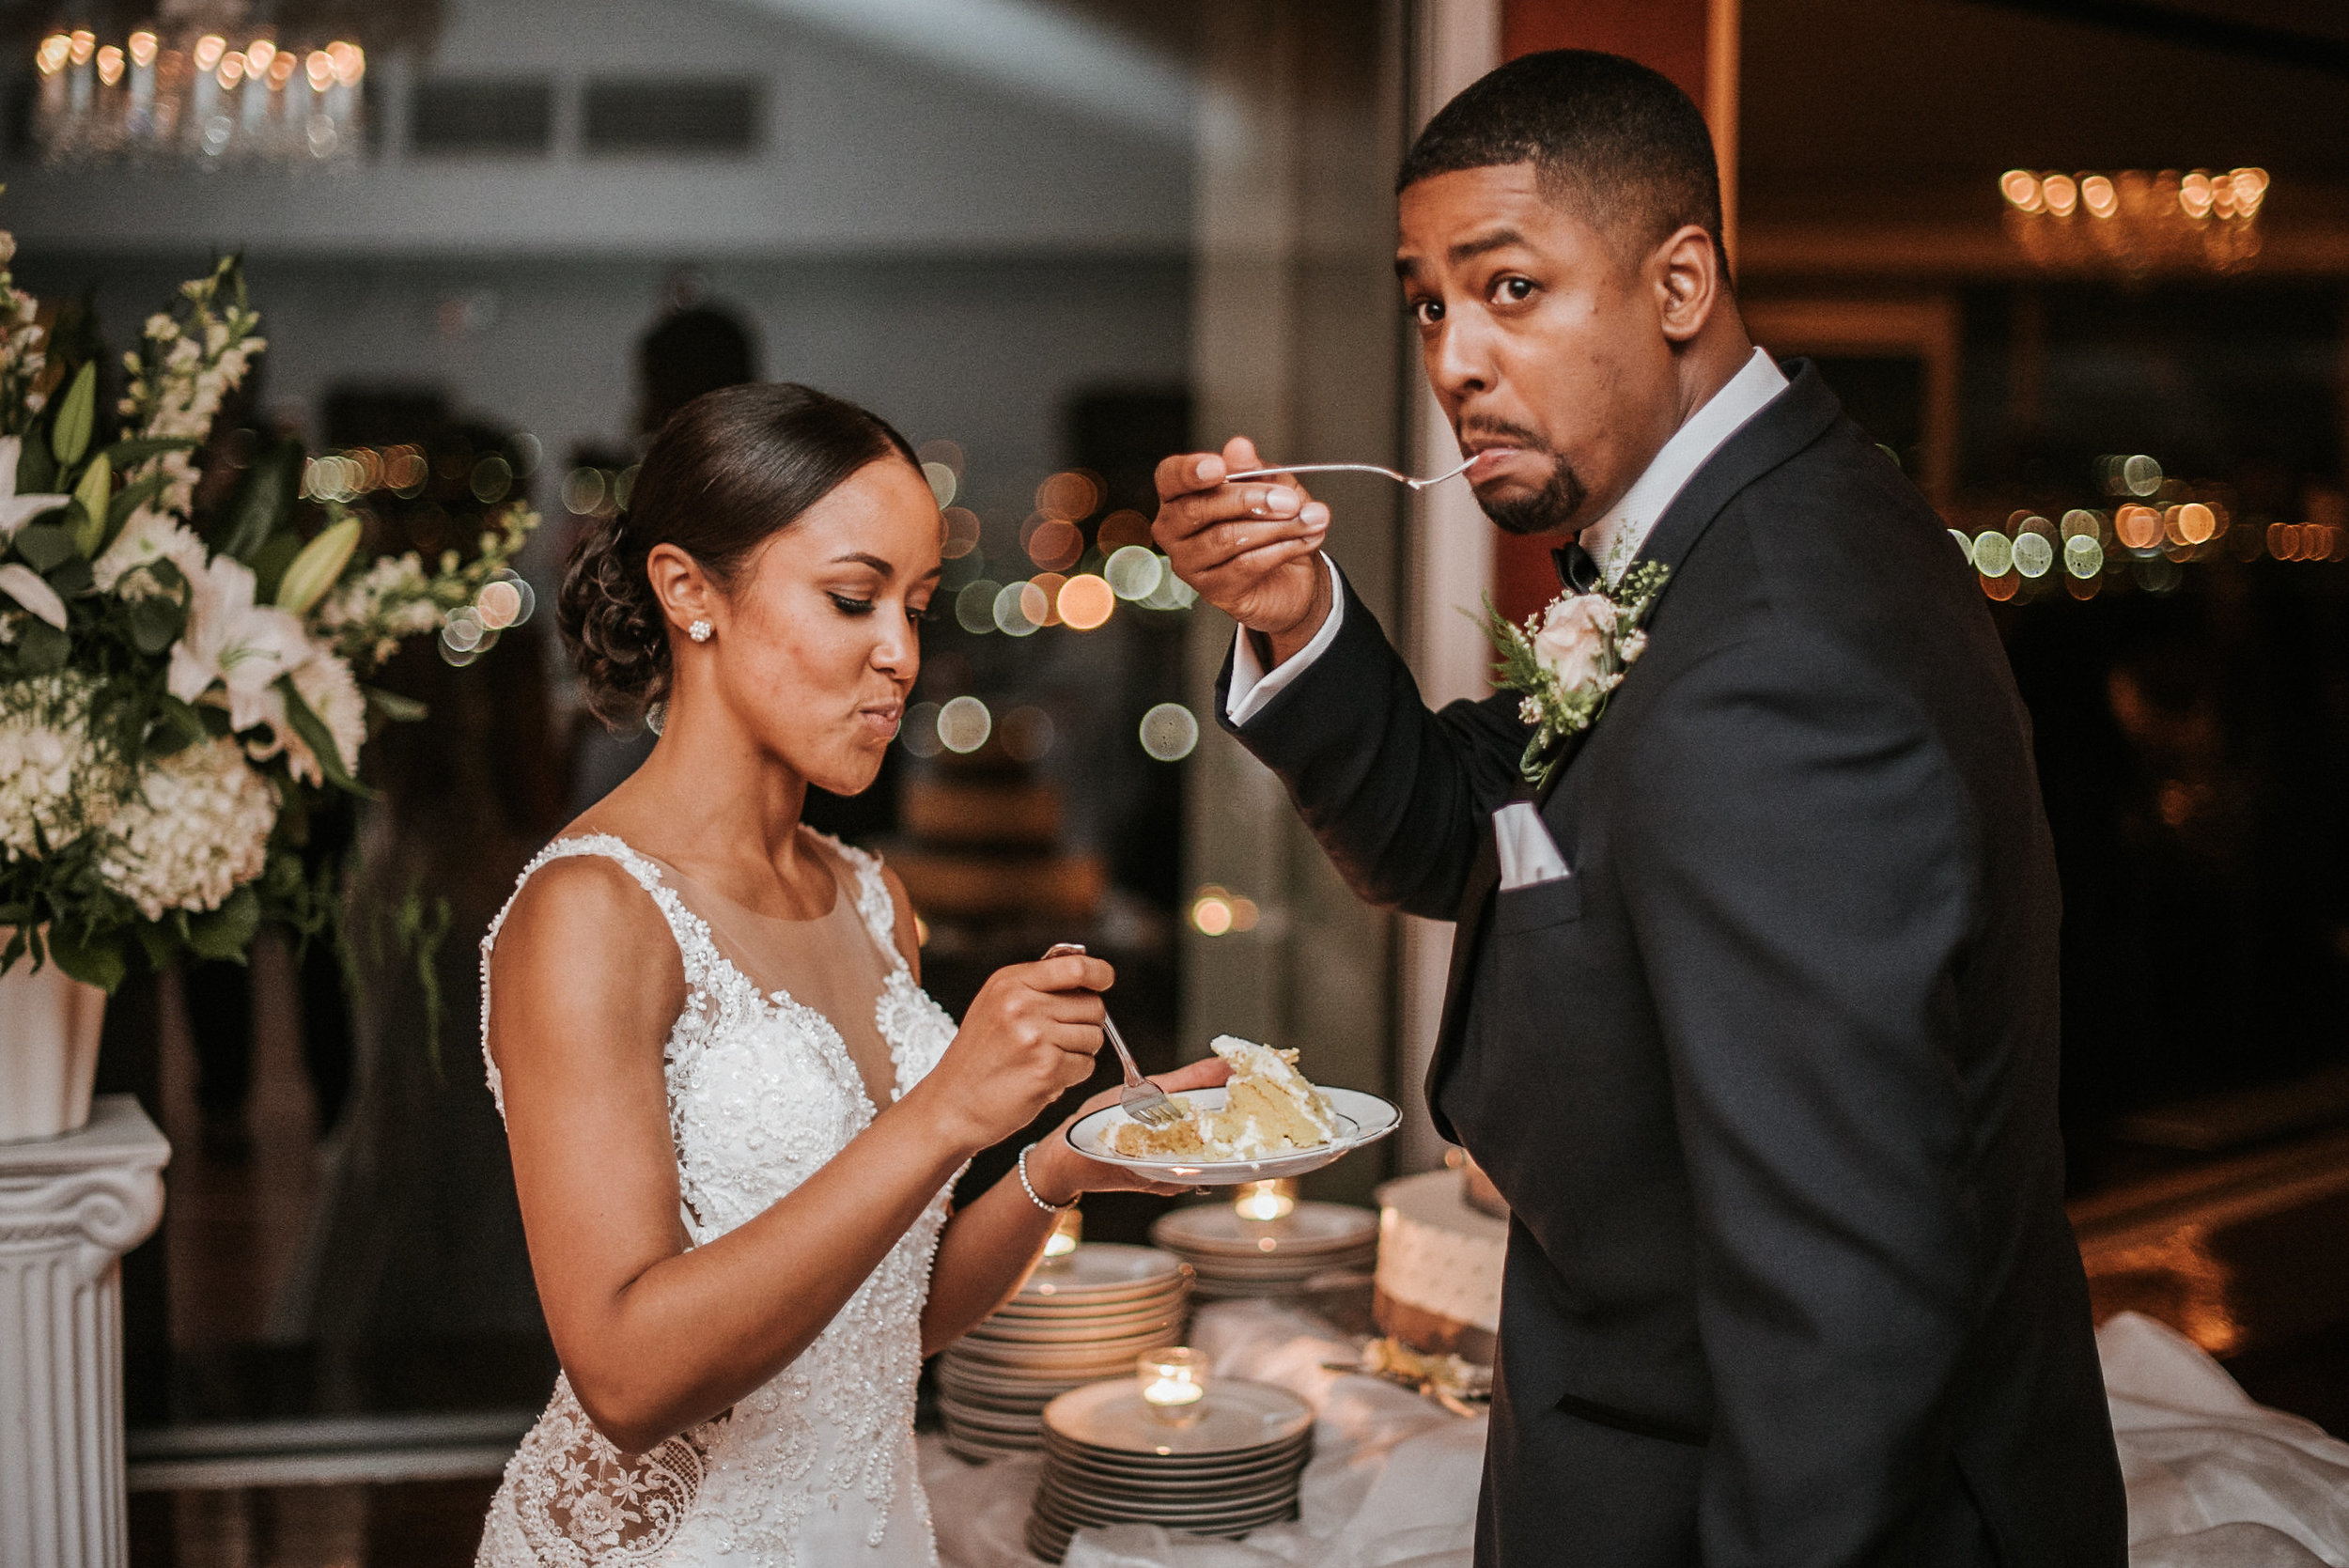 Groom and bride eating cake